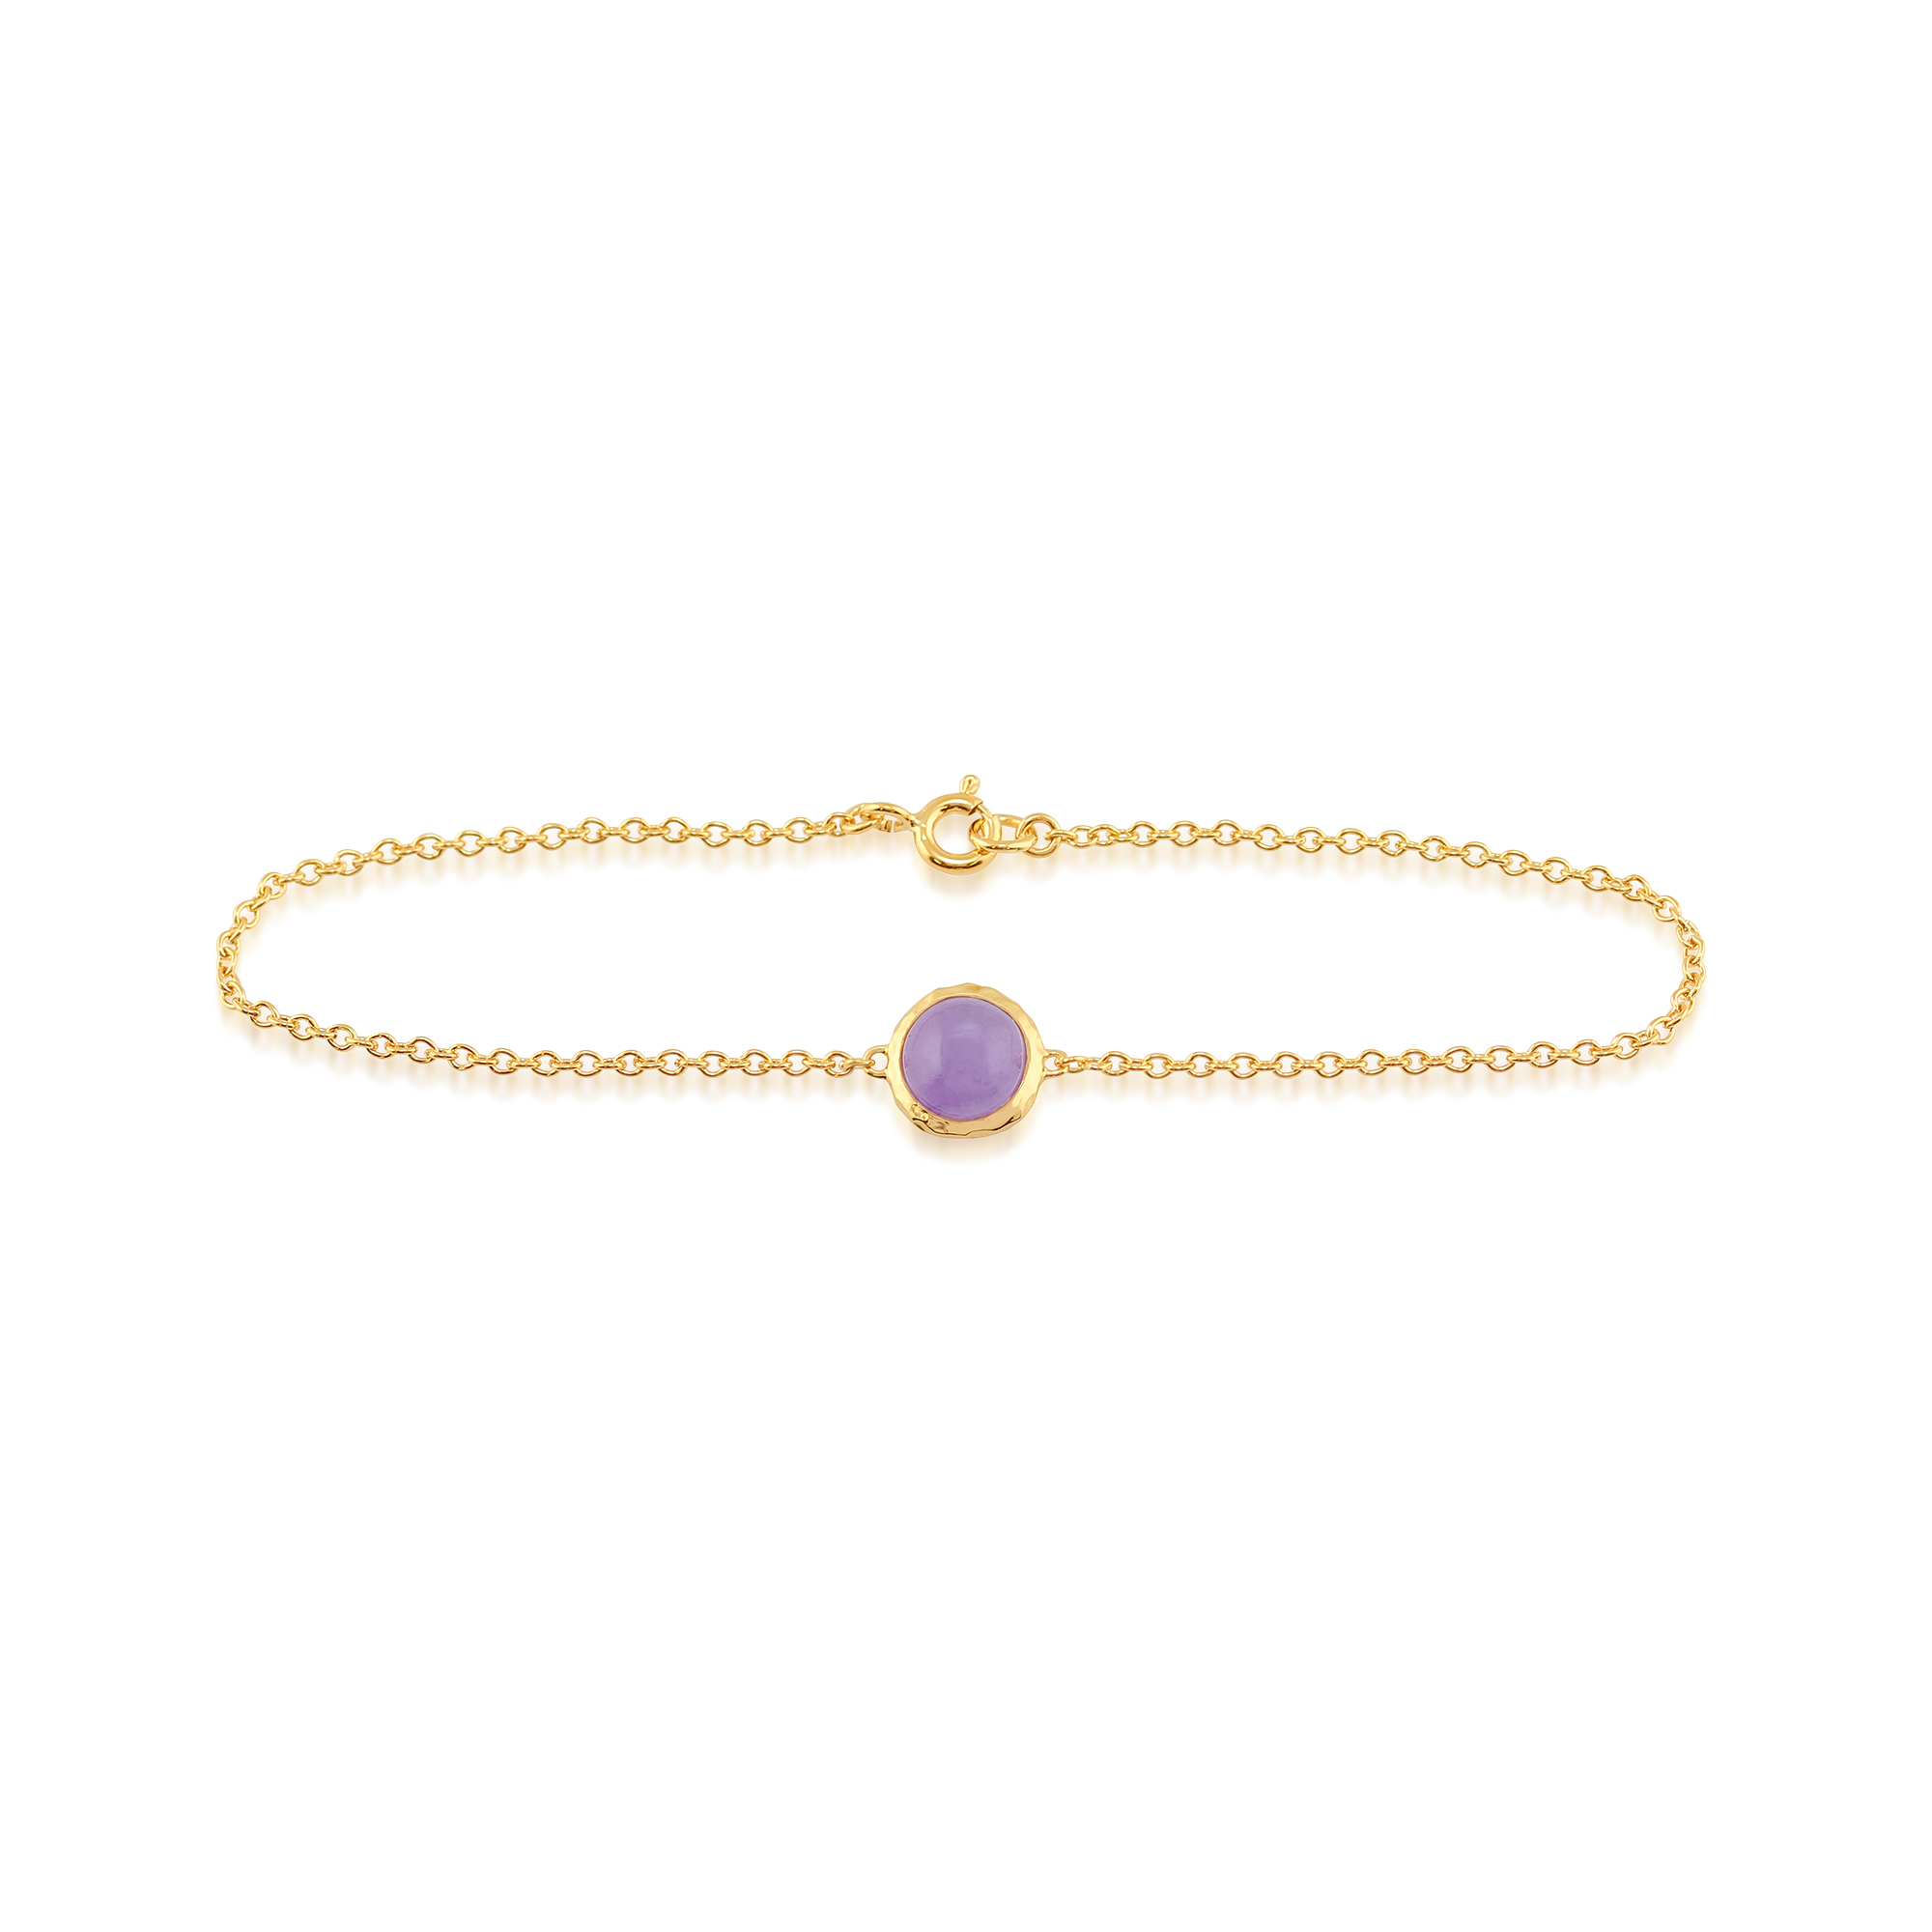 Lavender Jade 'Irida' Pastel Bracelet in 9ct Yellow Gold Plated Sterling Silver